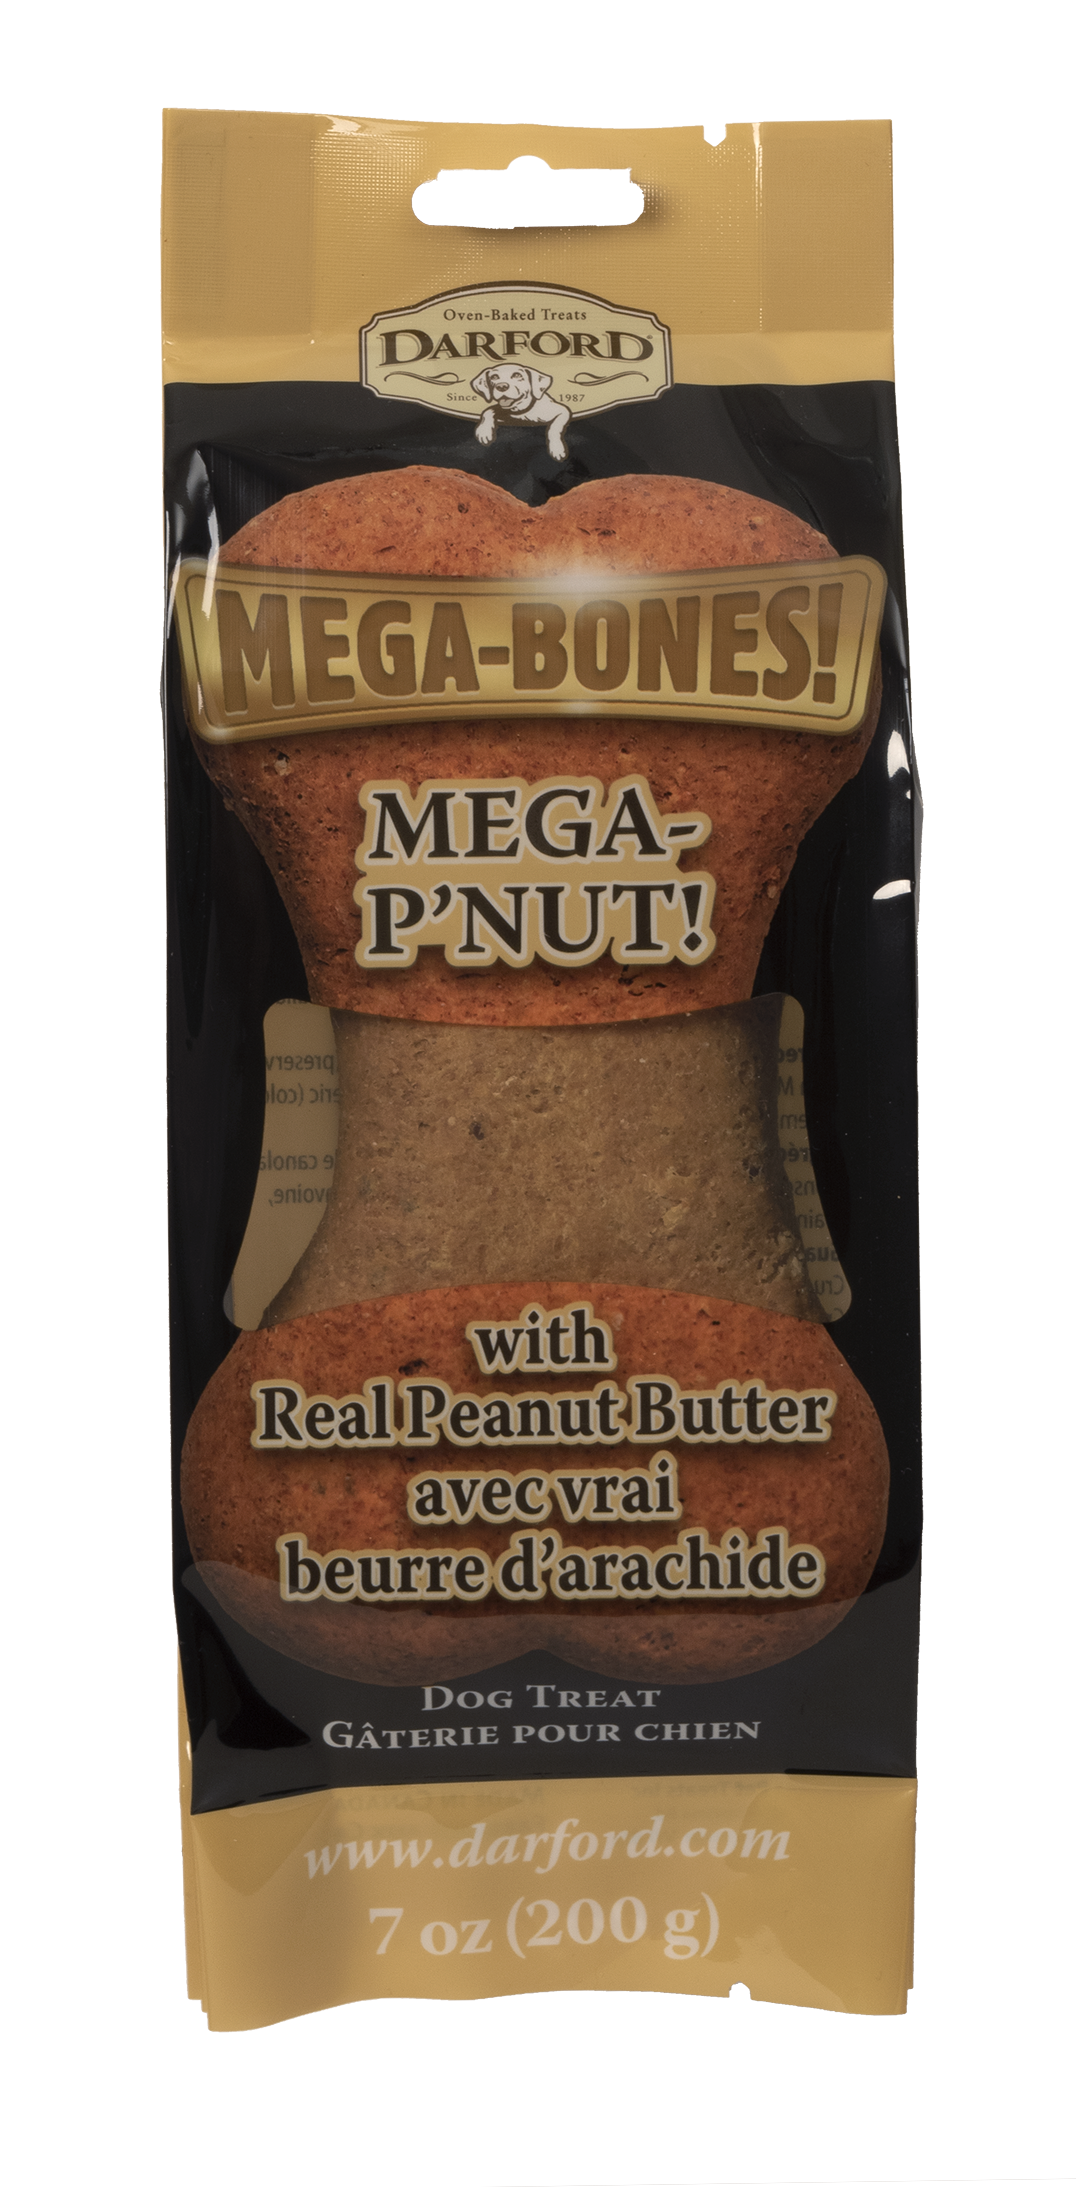 Darford Mega P'Nut Flavor Bone Dog Treat, 7-oz